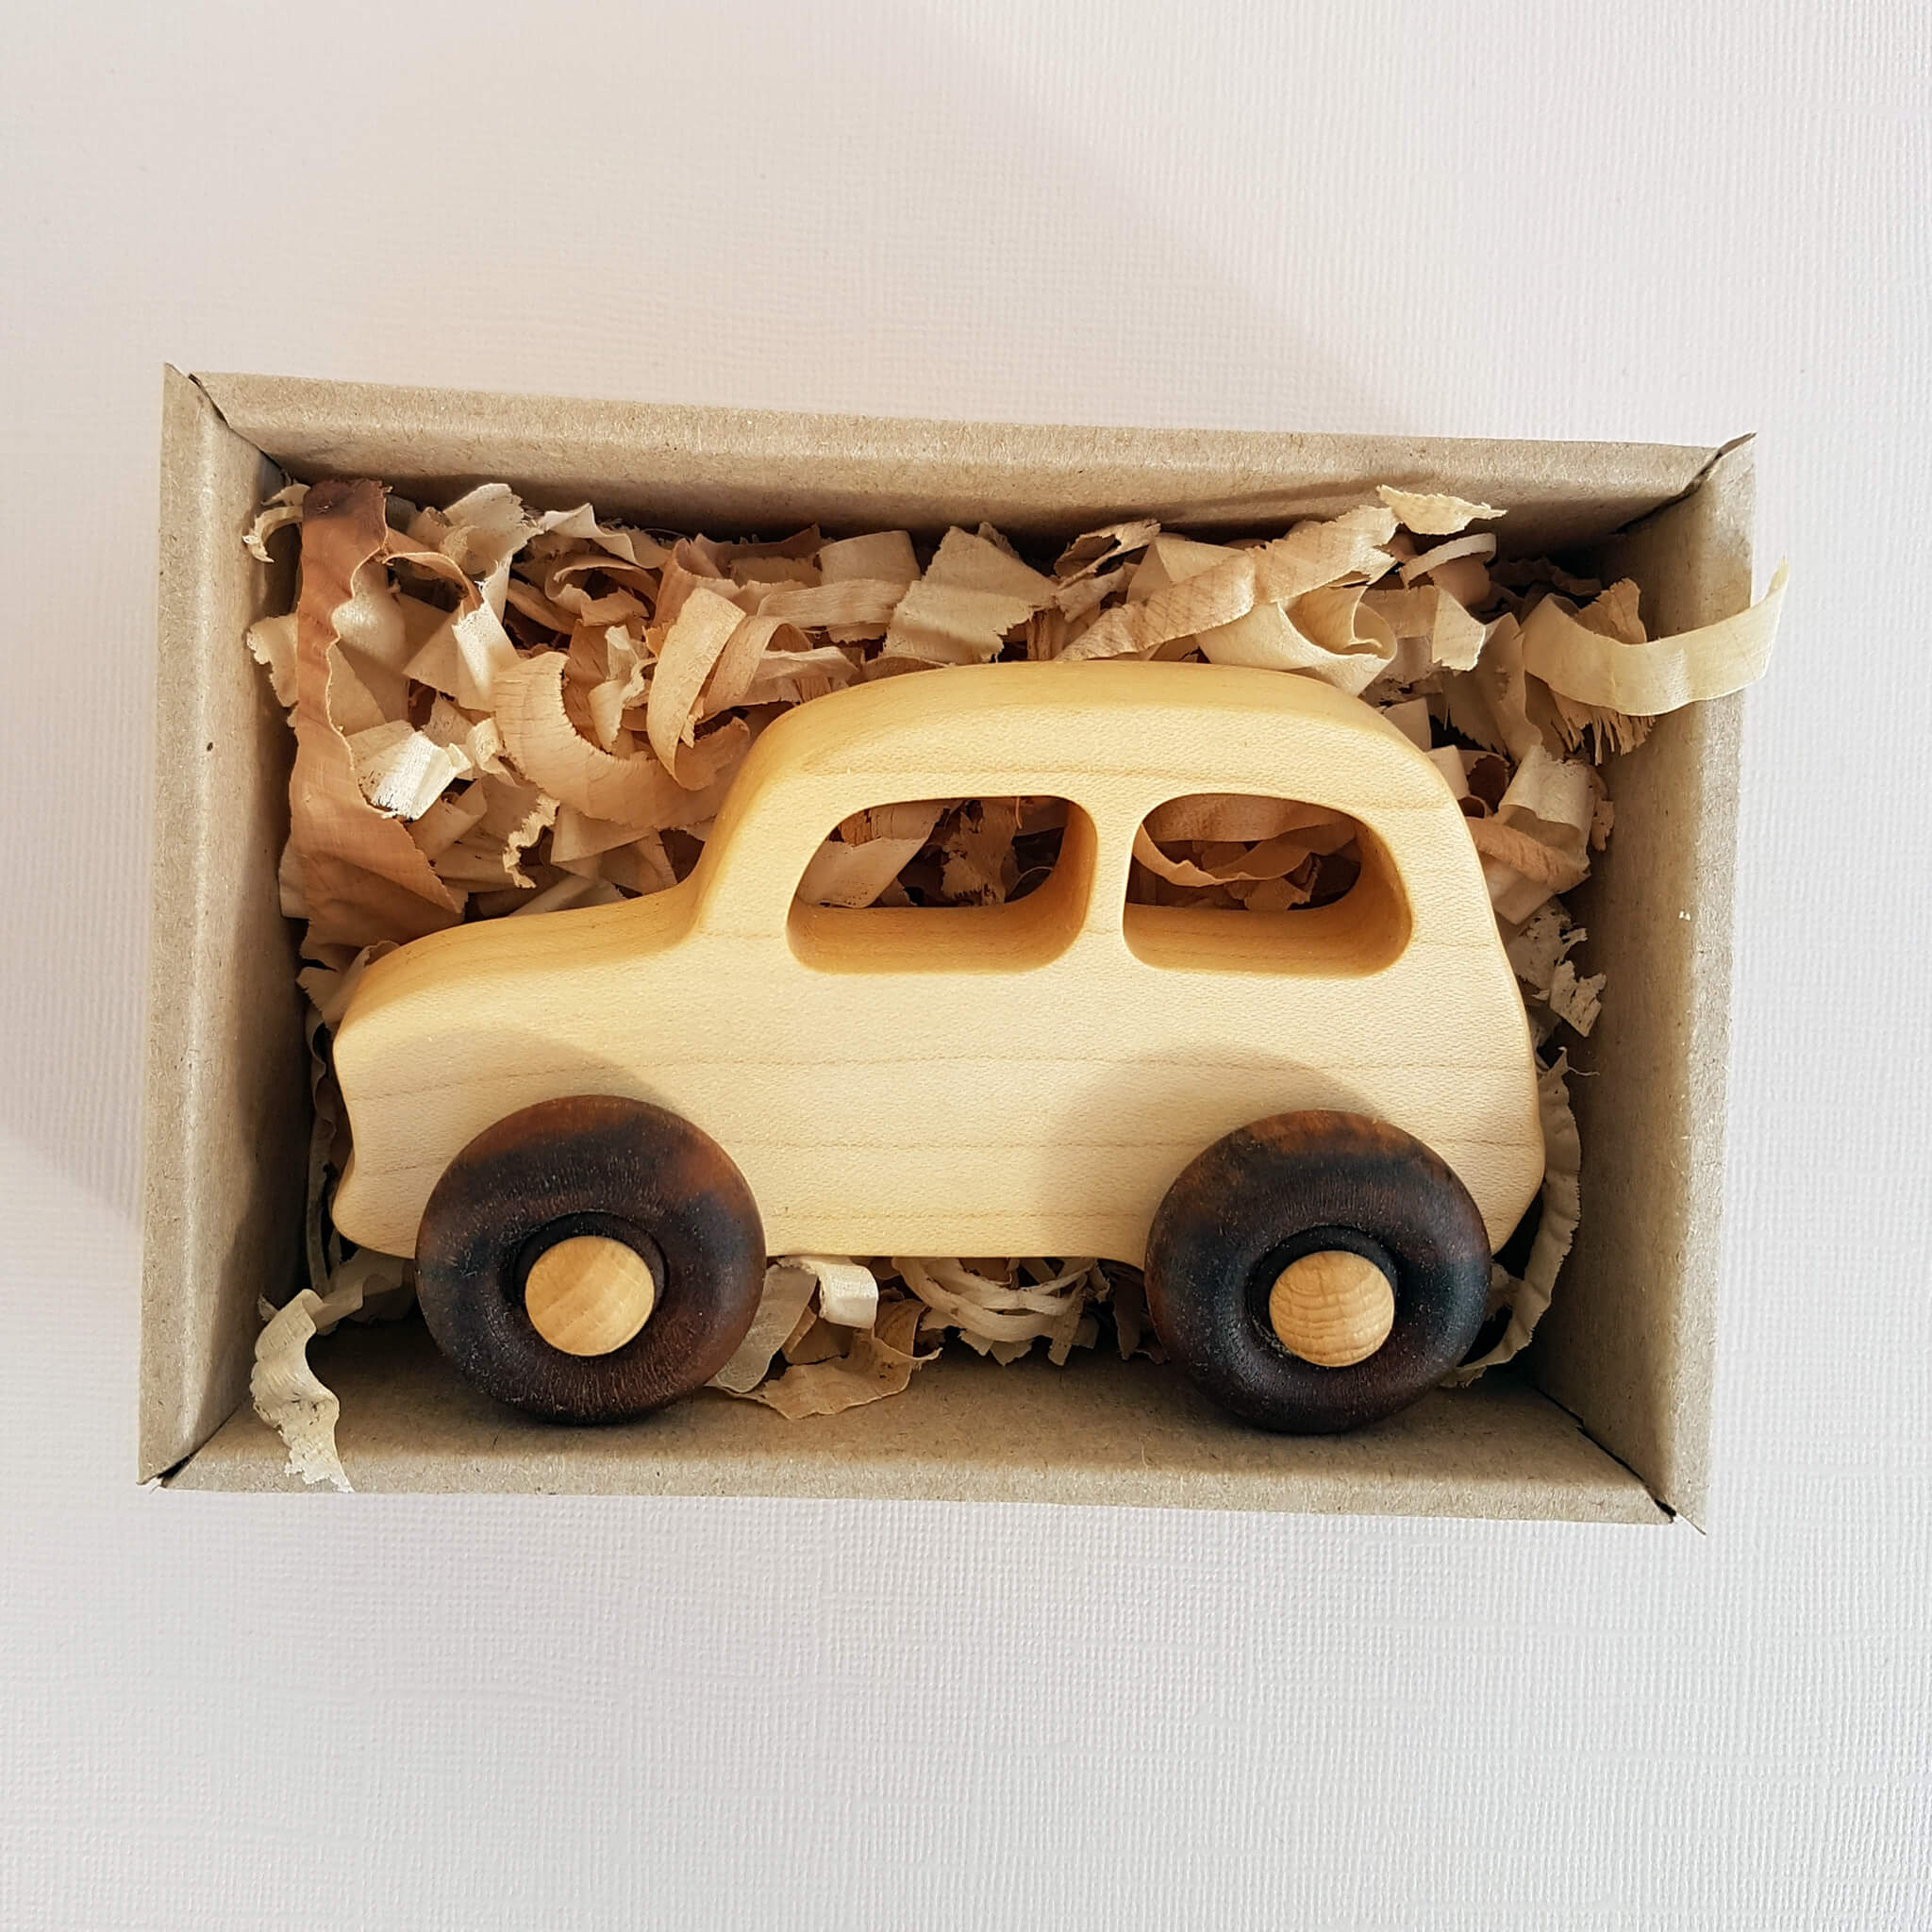 Natural Little French Car Handcrafted - Unik by Nature